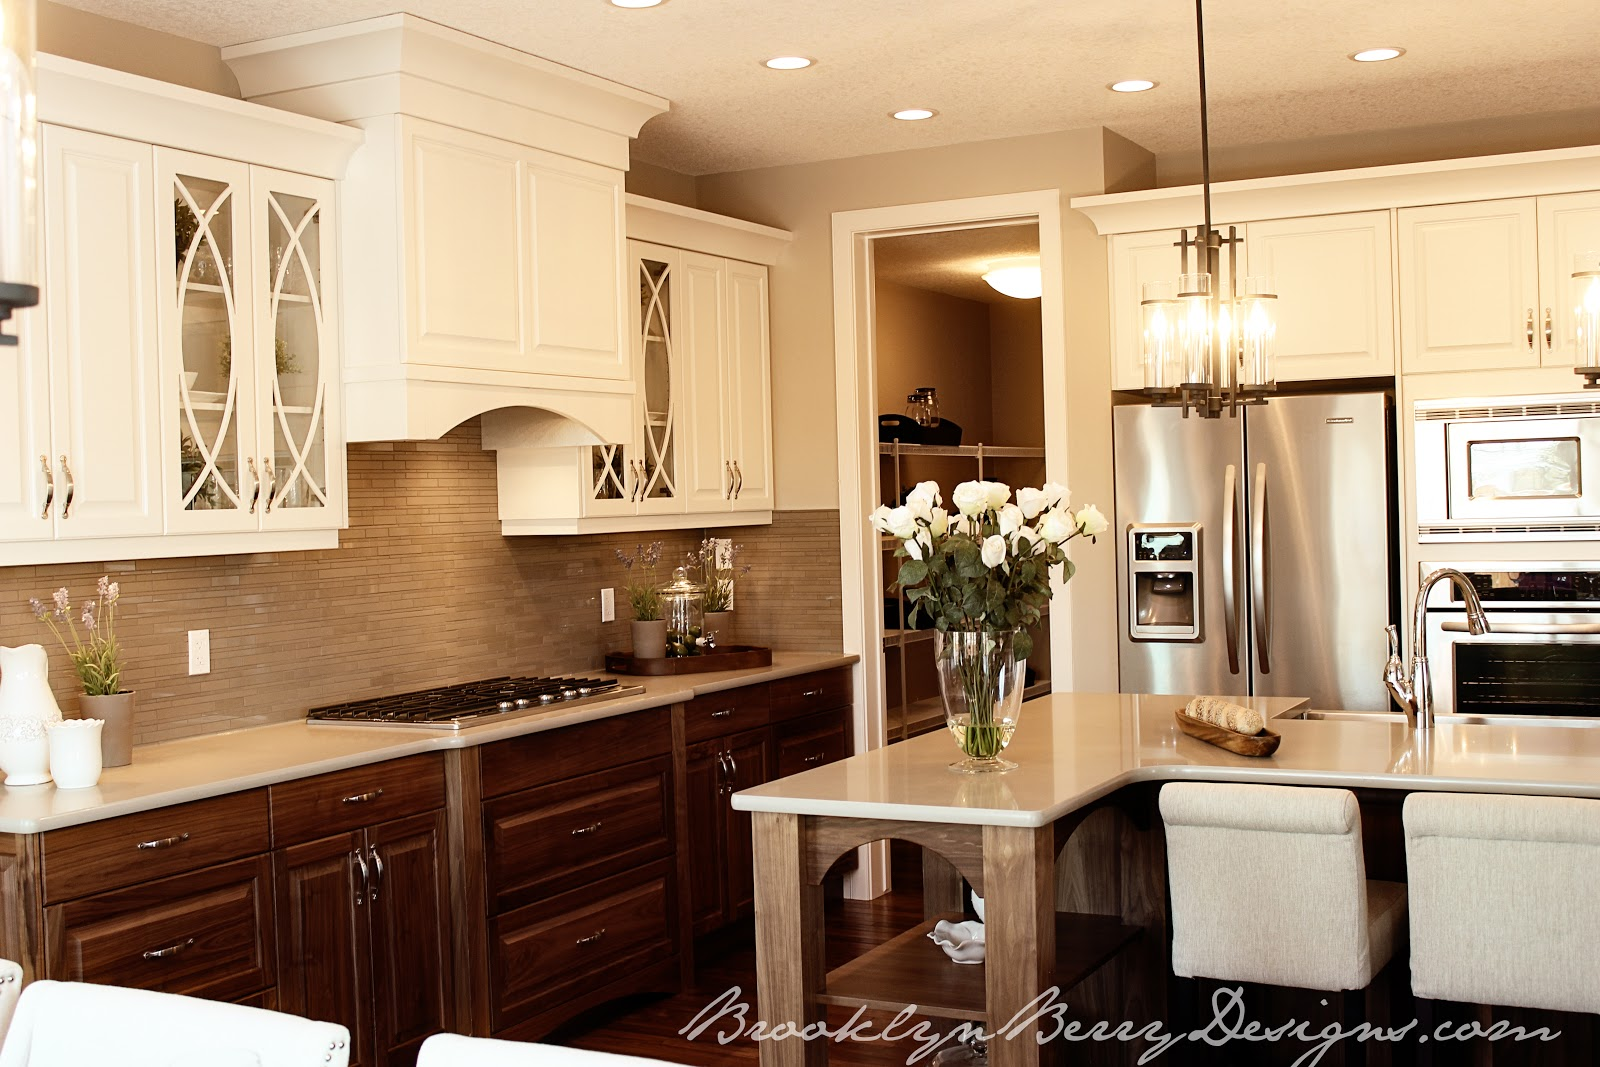 Aspen ii showhome in cranston dream kitchen design for Dream kitchen designs